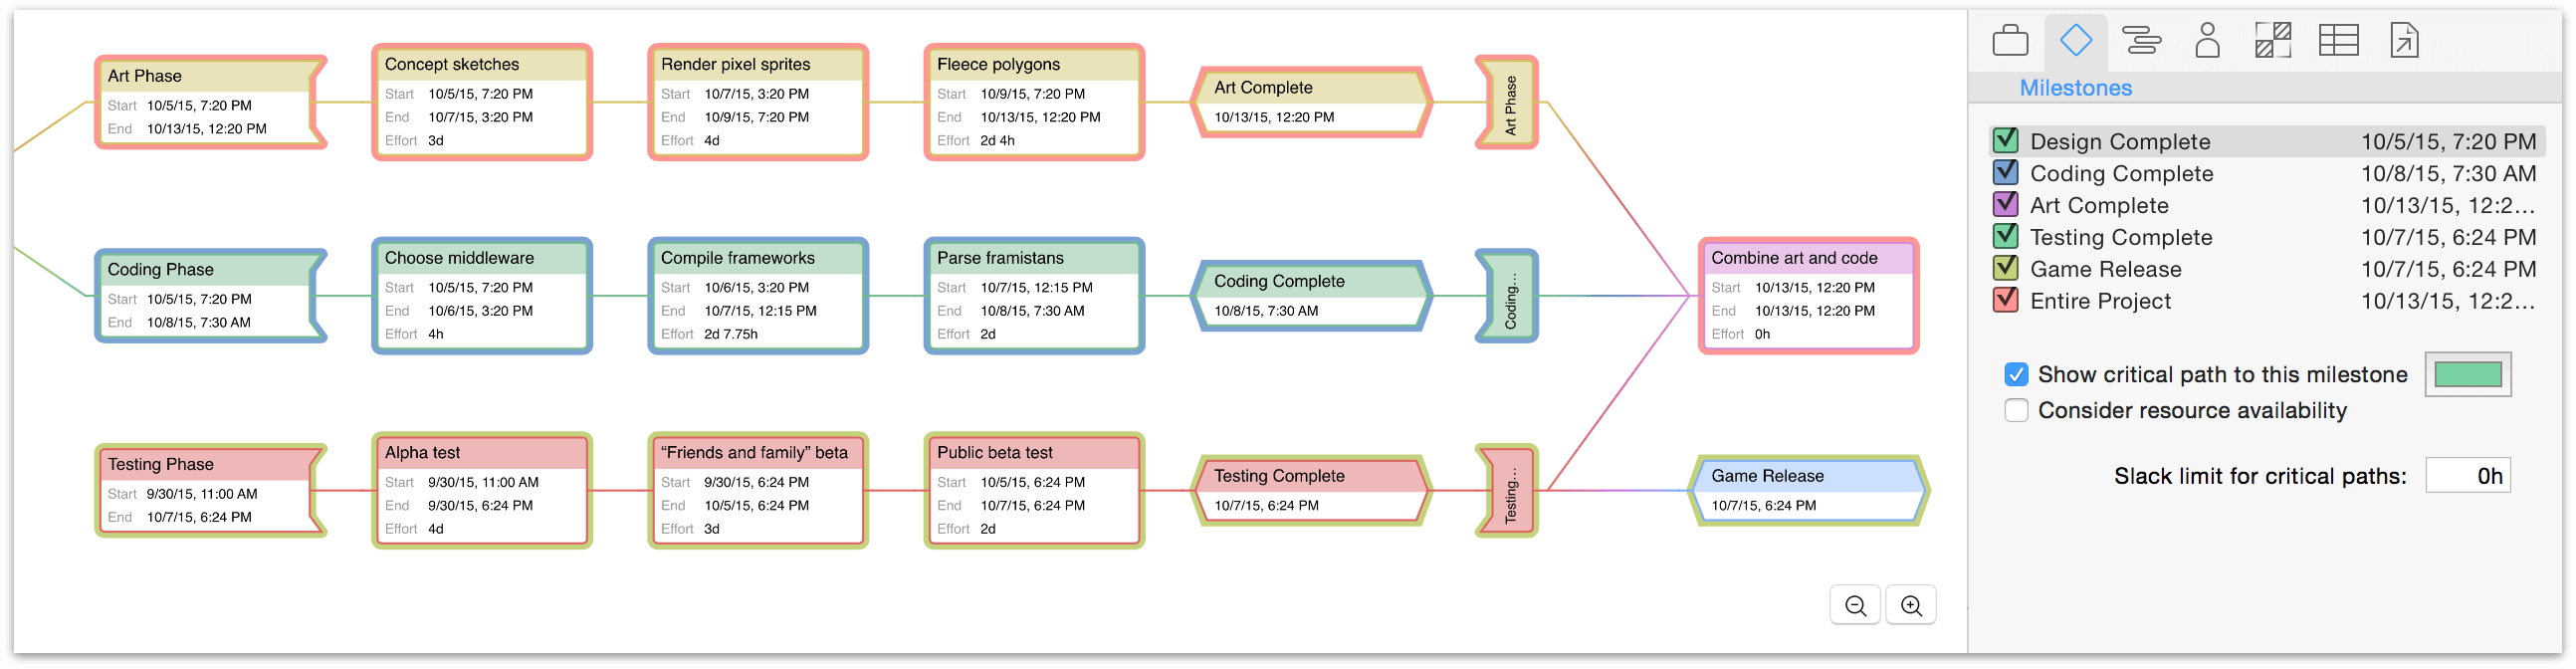 The display of critical paths on a project in Network View.